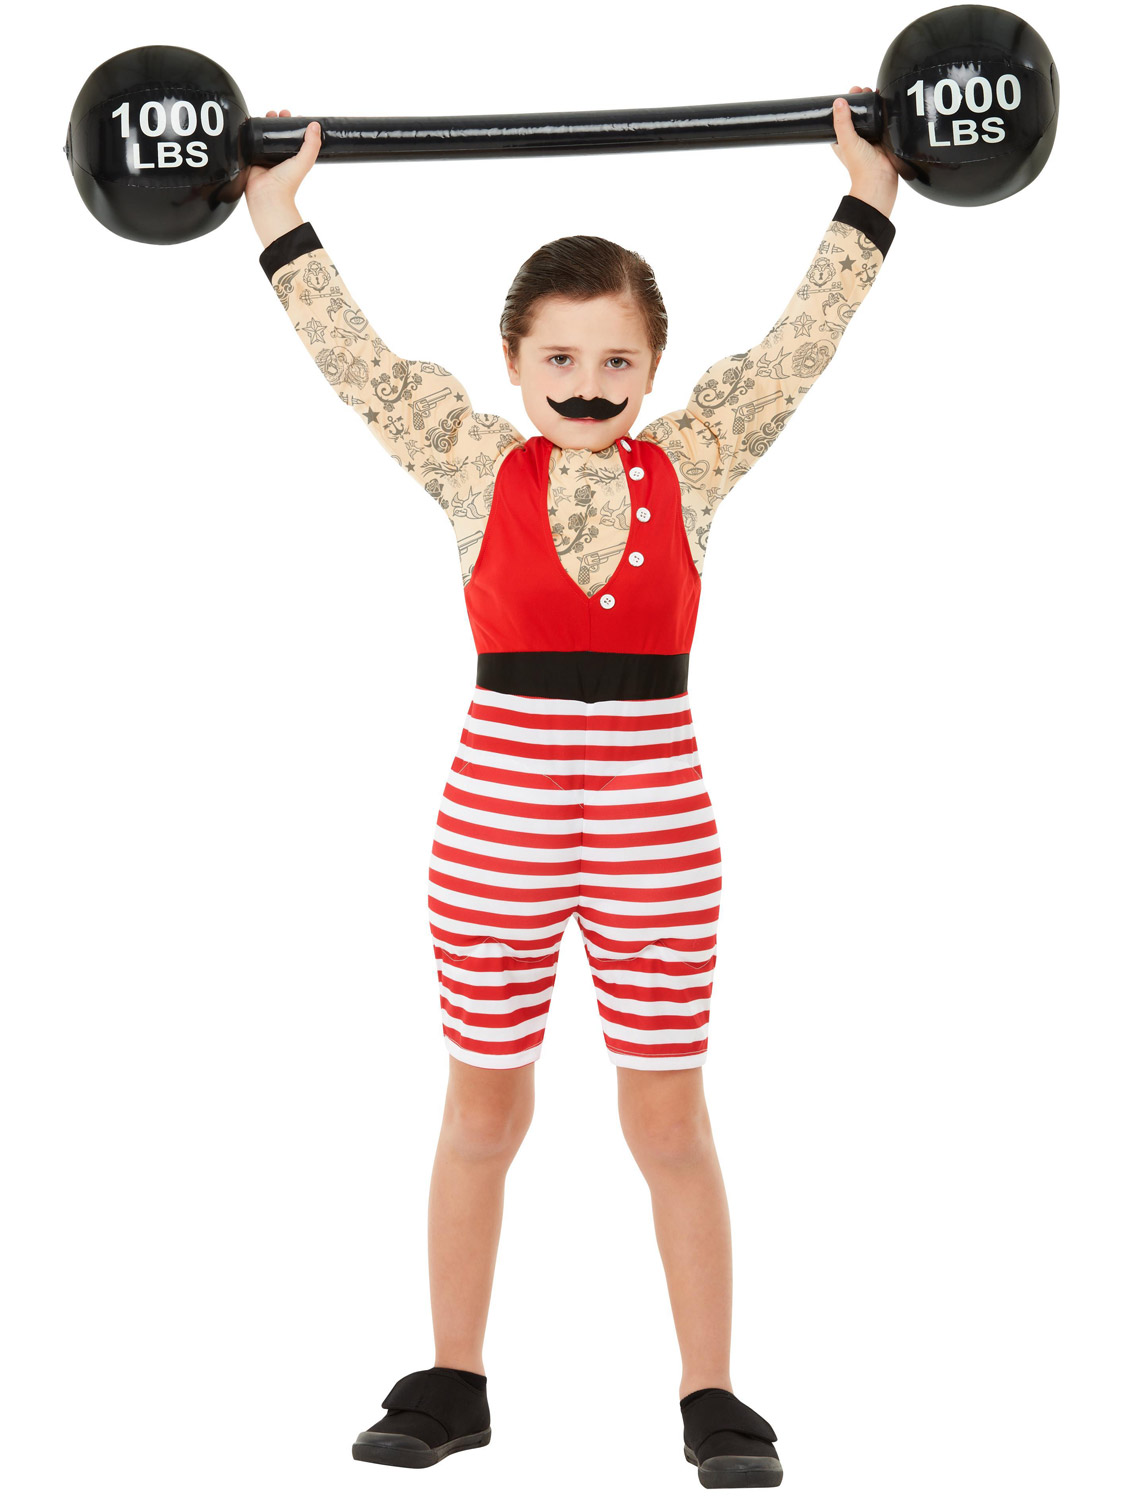 Boys-Girls-Ringmaster-Strongman-Costume-The-Greatest-Showman-Circus-Fancy-Dress thumbnail 7